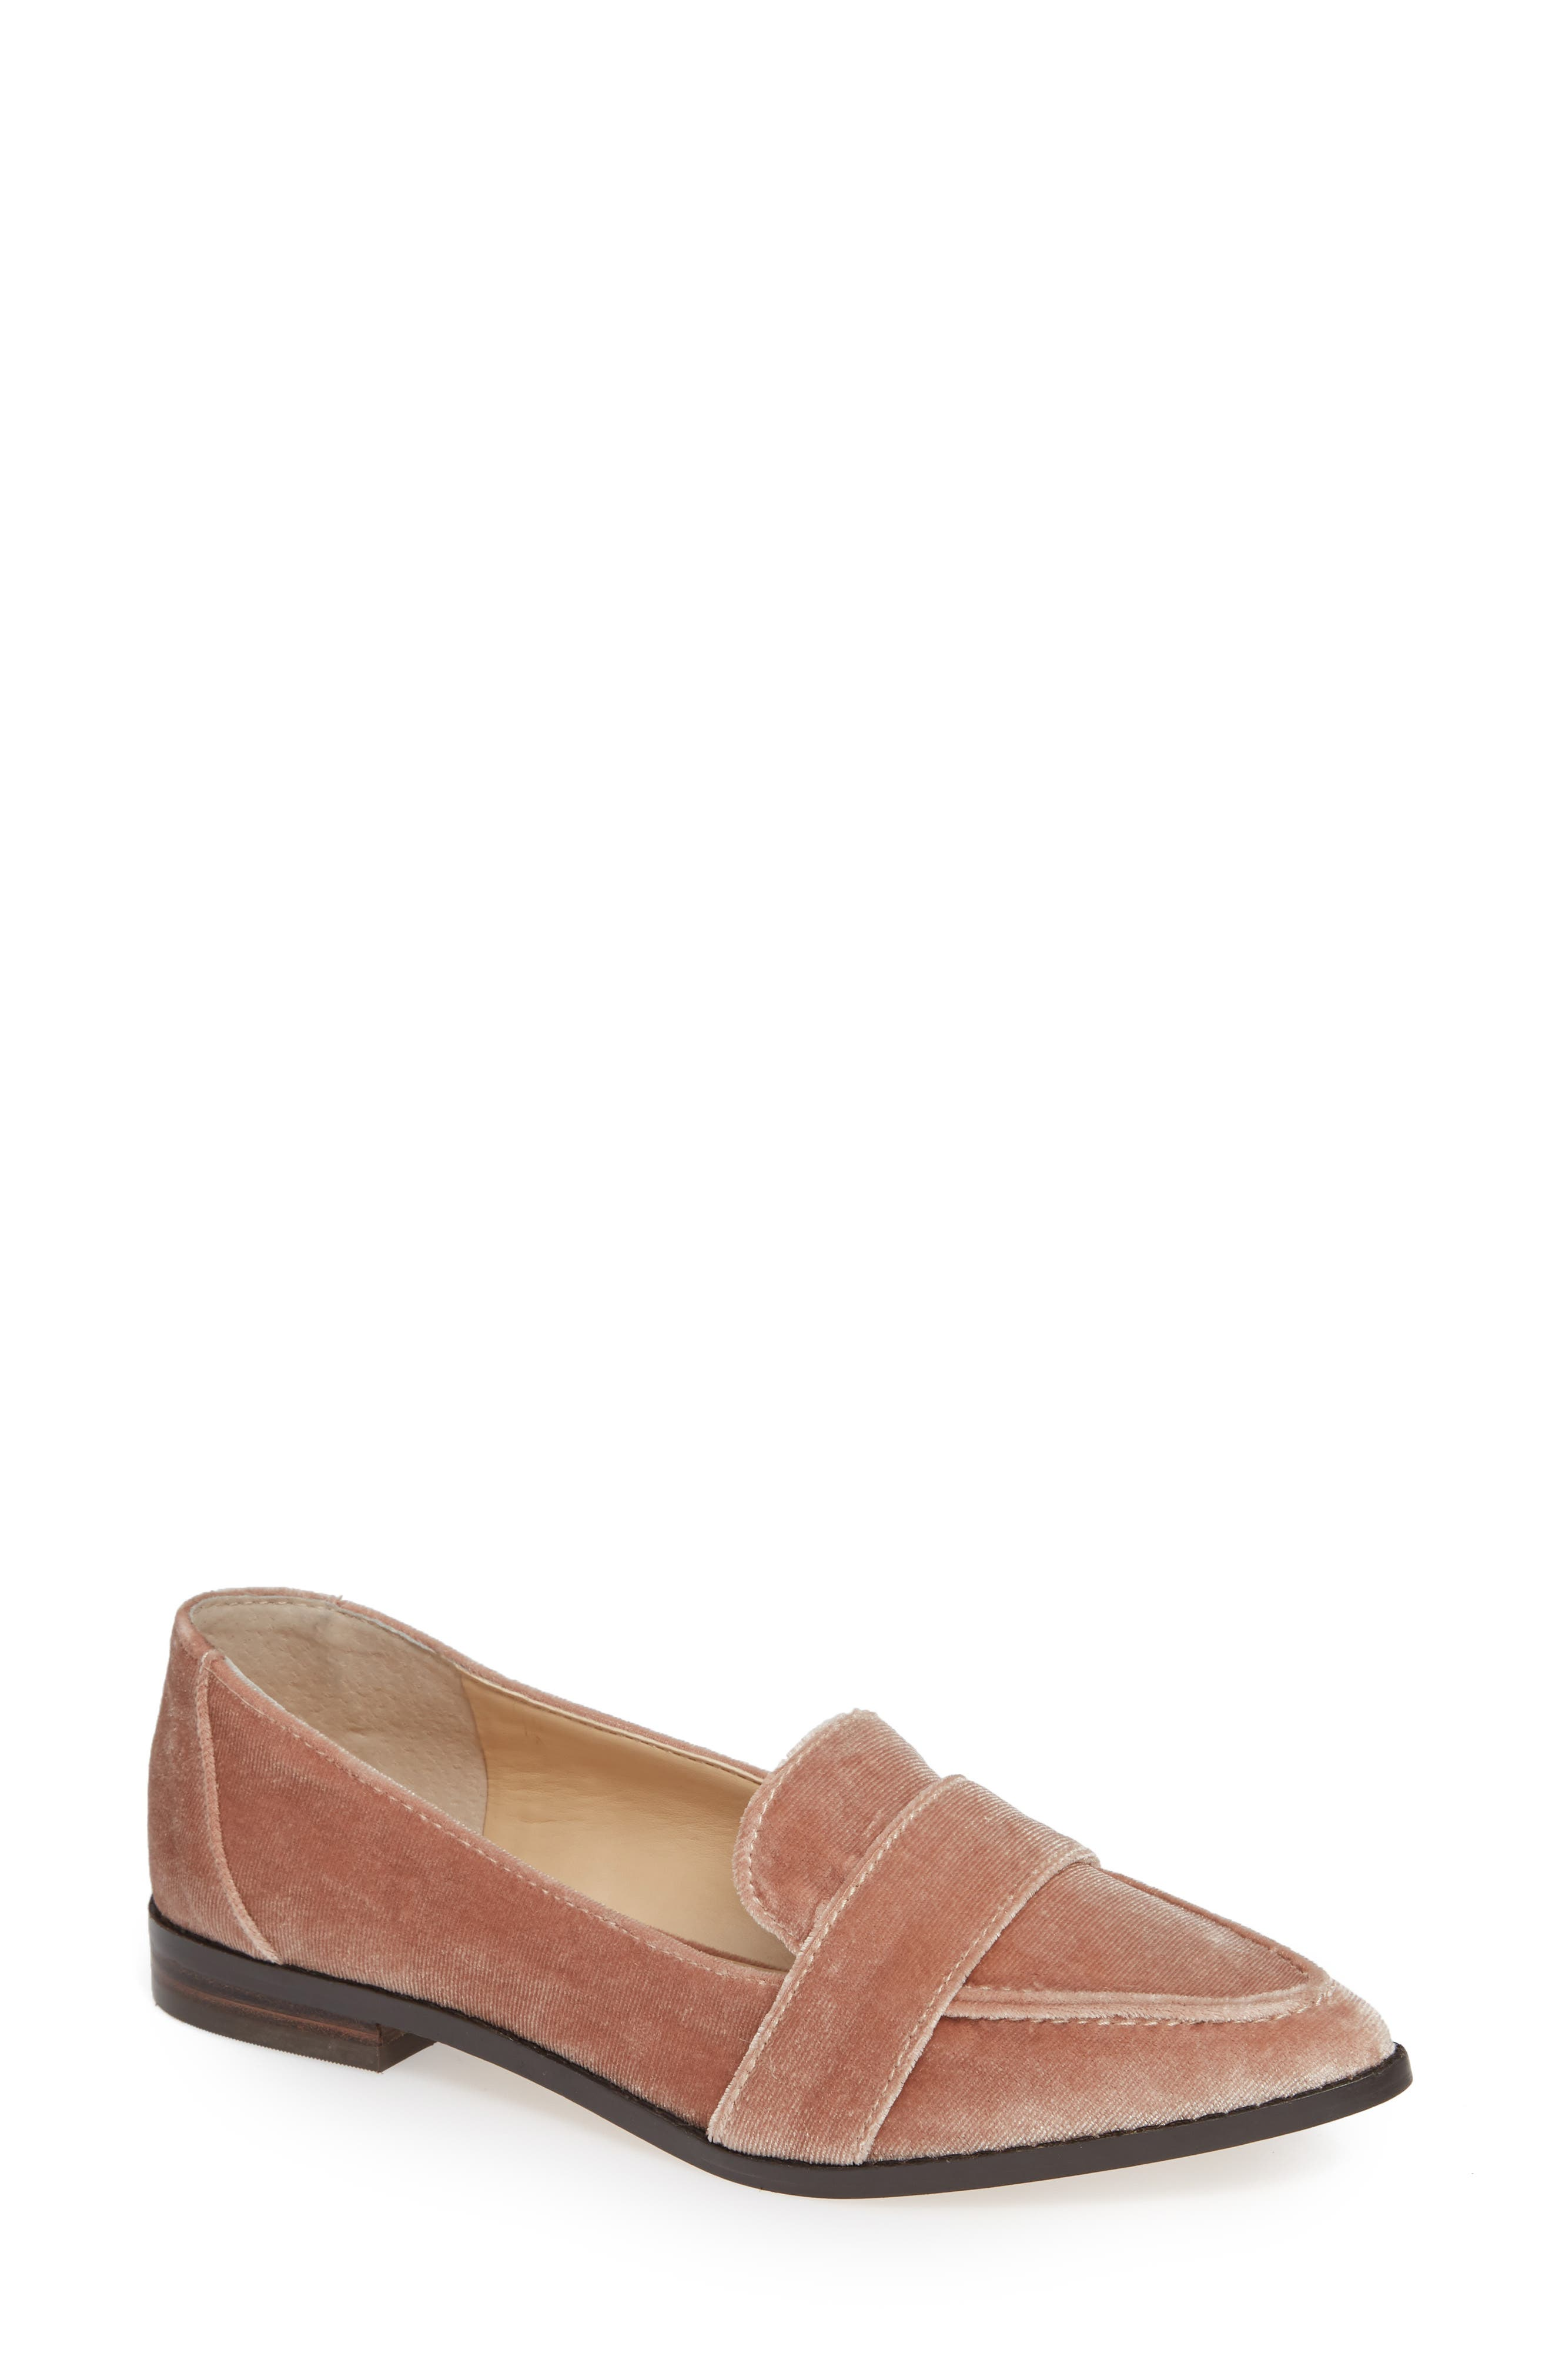 Edie Pointy Toe Loafer,                         Main,                         color, Moonlight Velvet